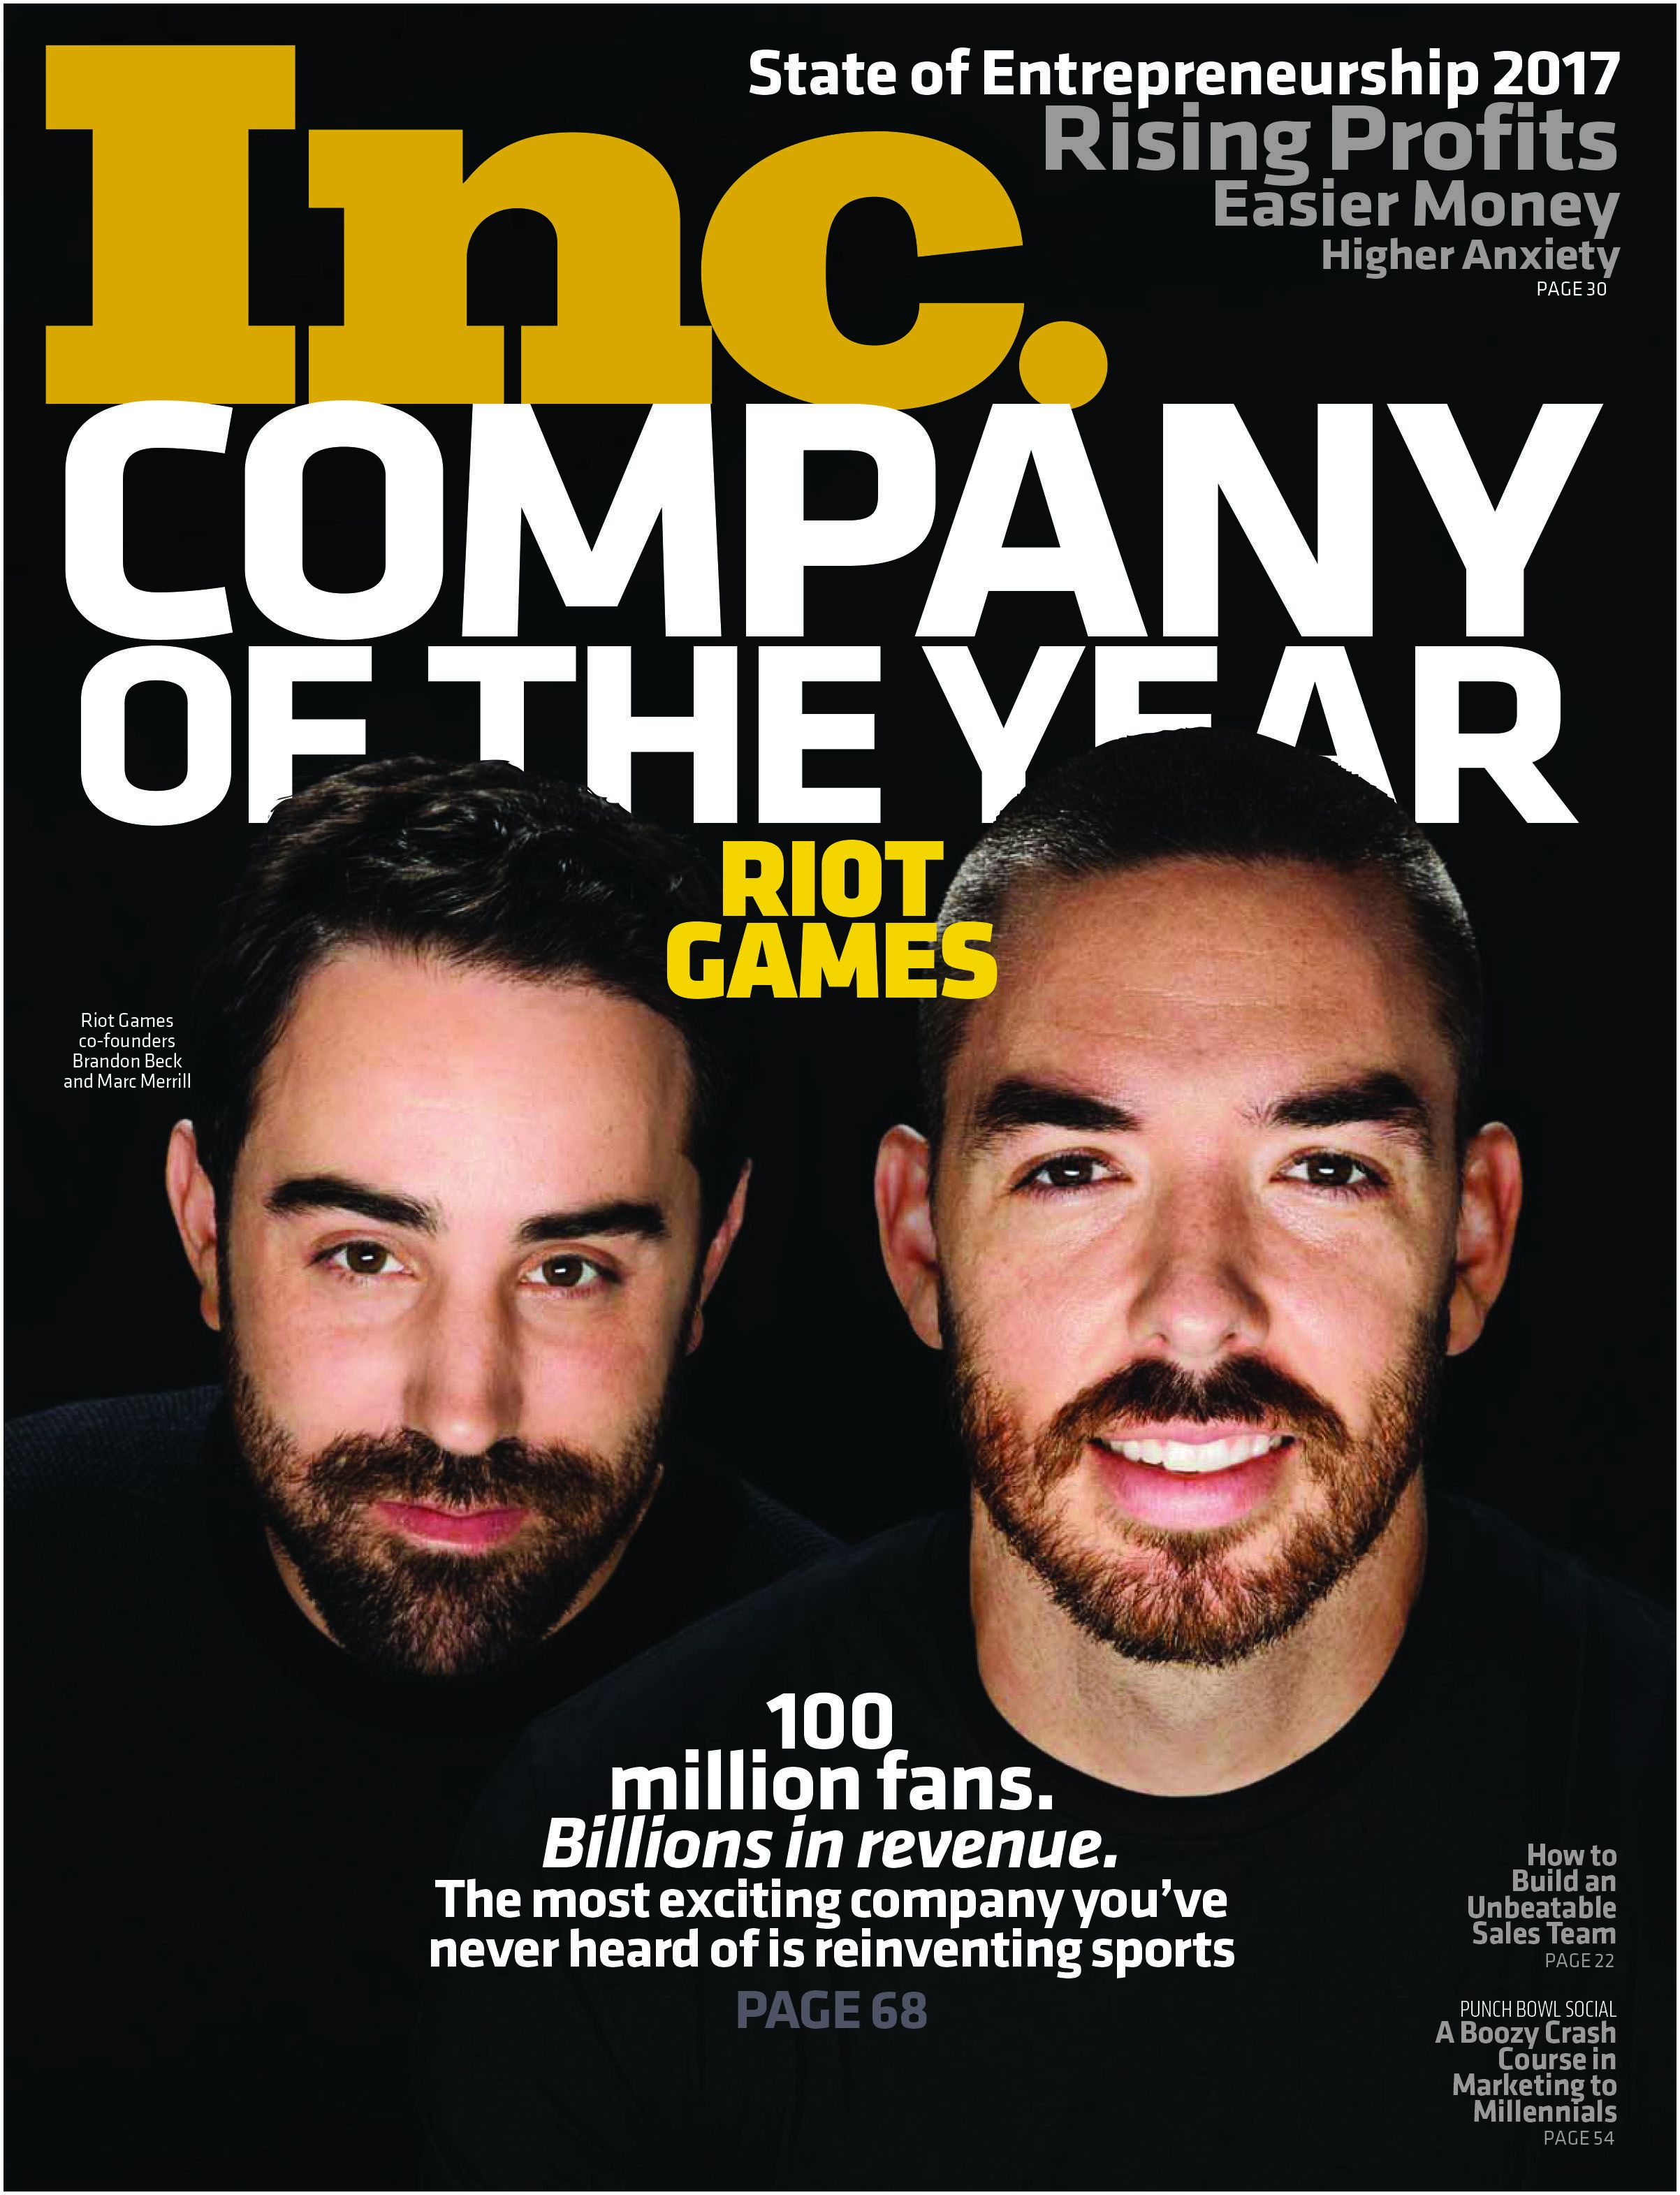 Pin by Education Finance merce & Innovation on INC MAGAZINE COVERS